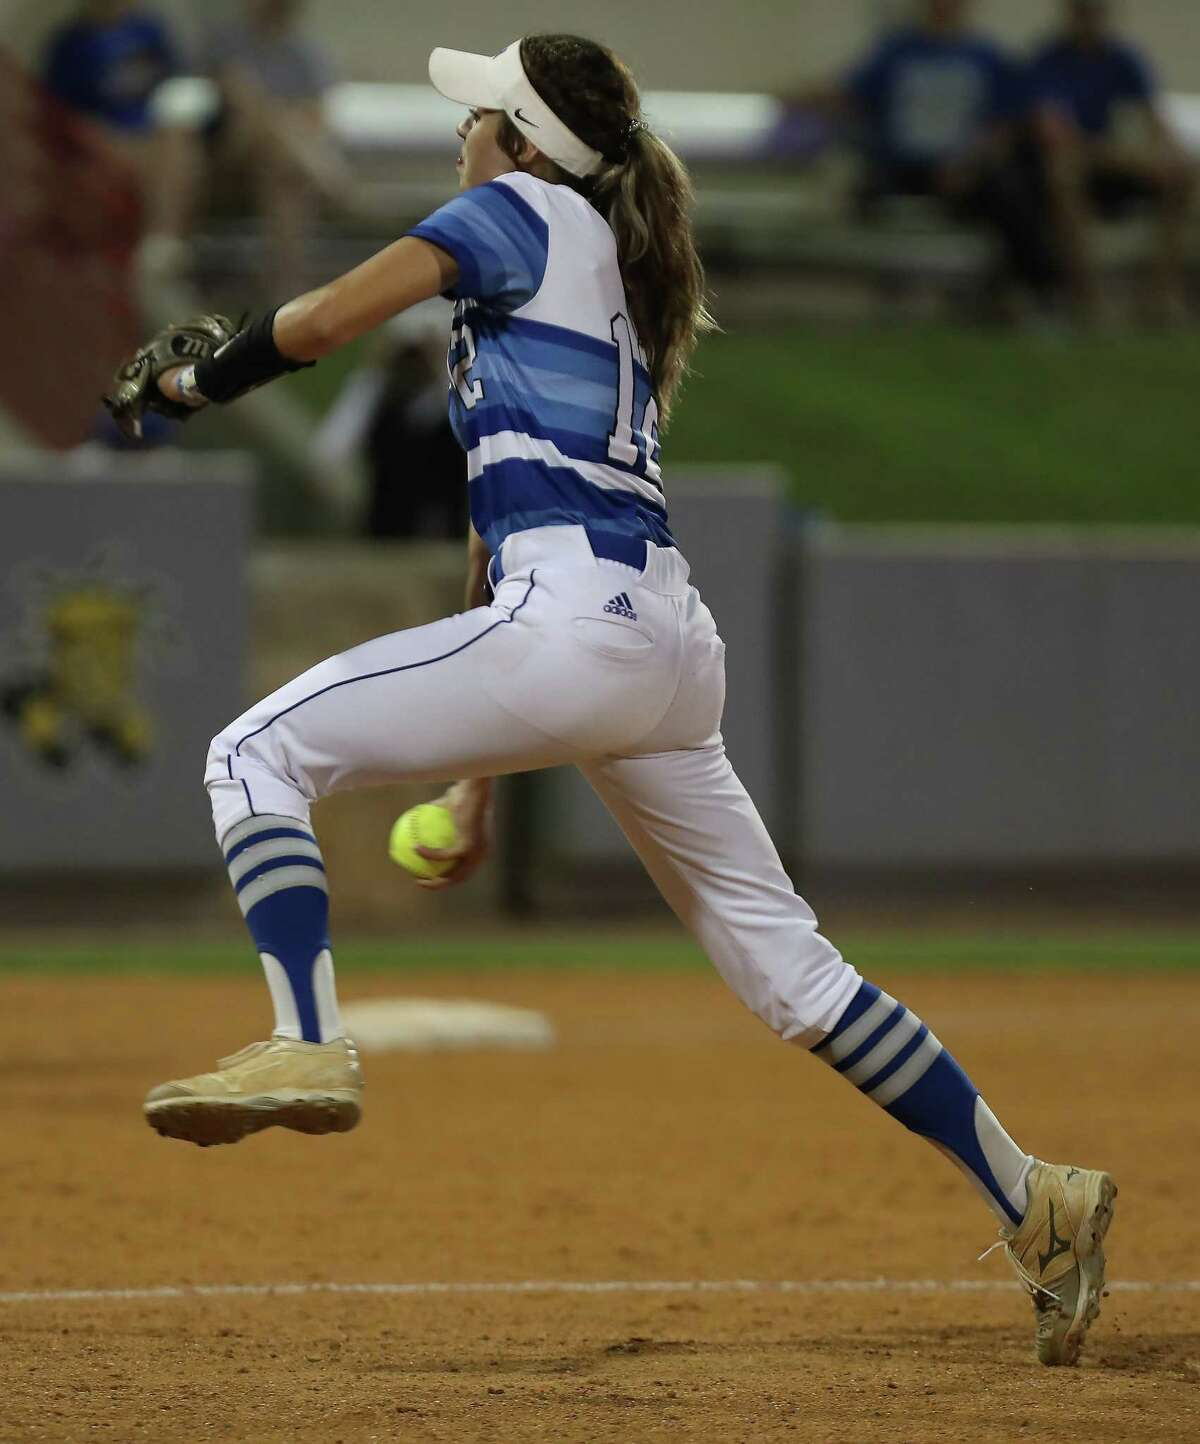 Barbers Hill pitcher Samantha Landry in action against Angleton Thursday, May 23, 2019, in Houston.